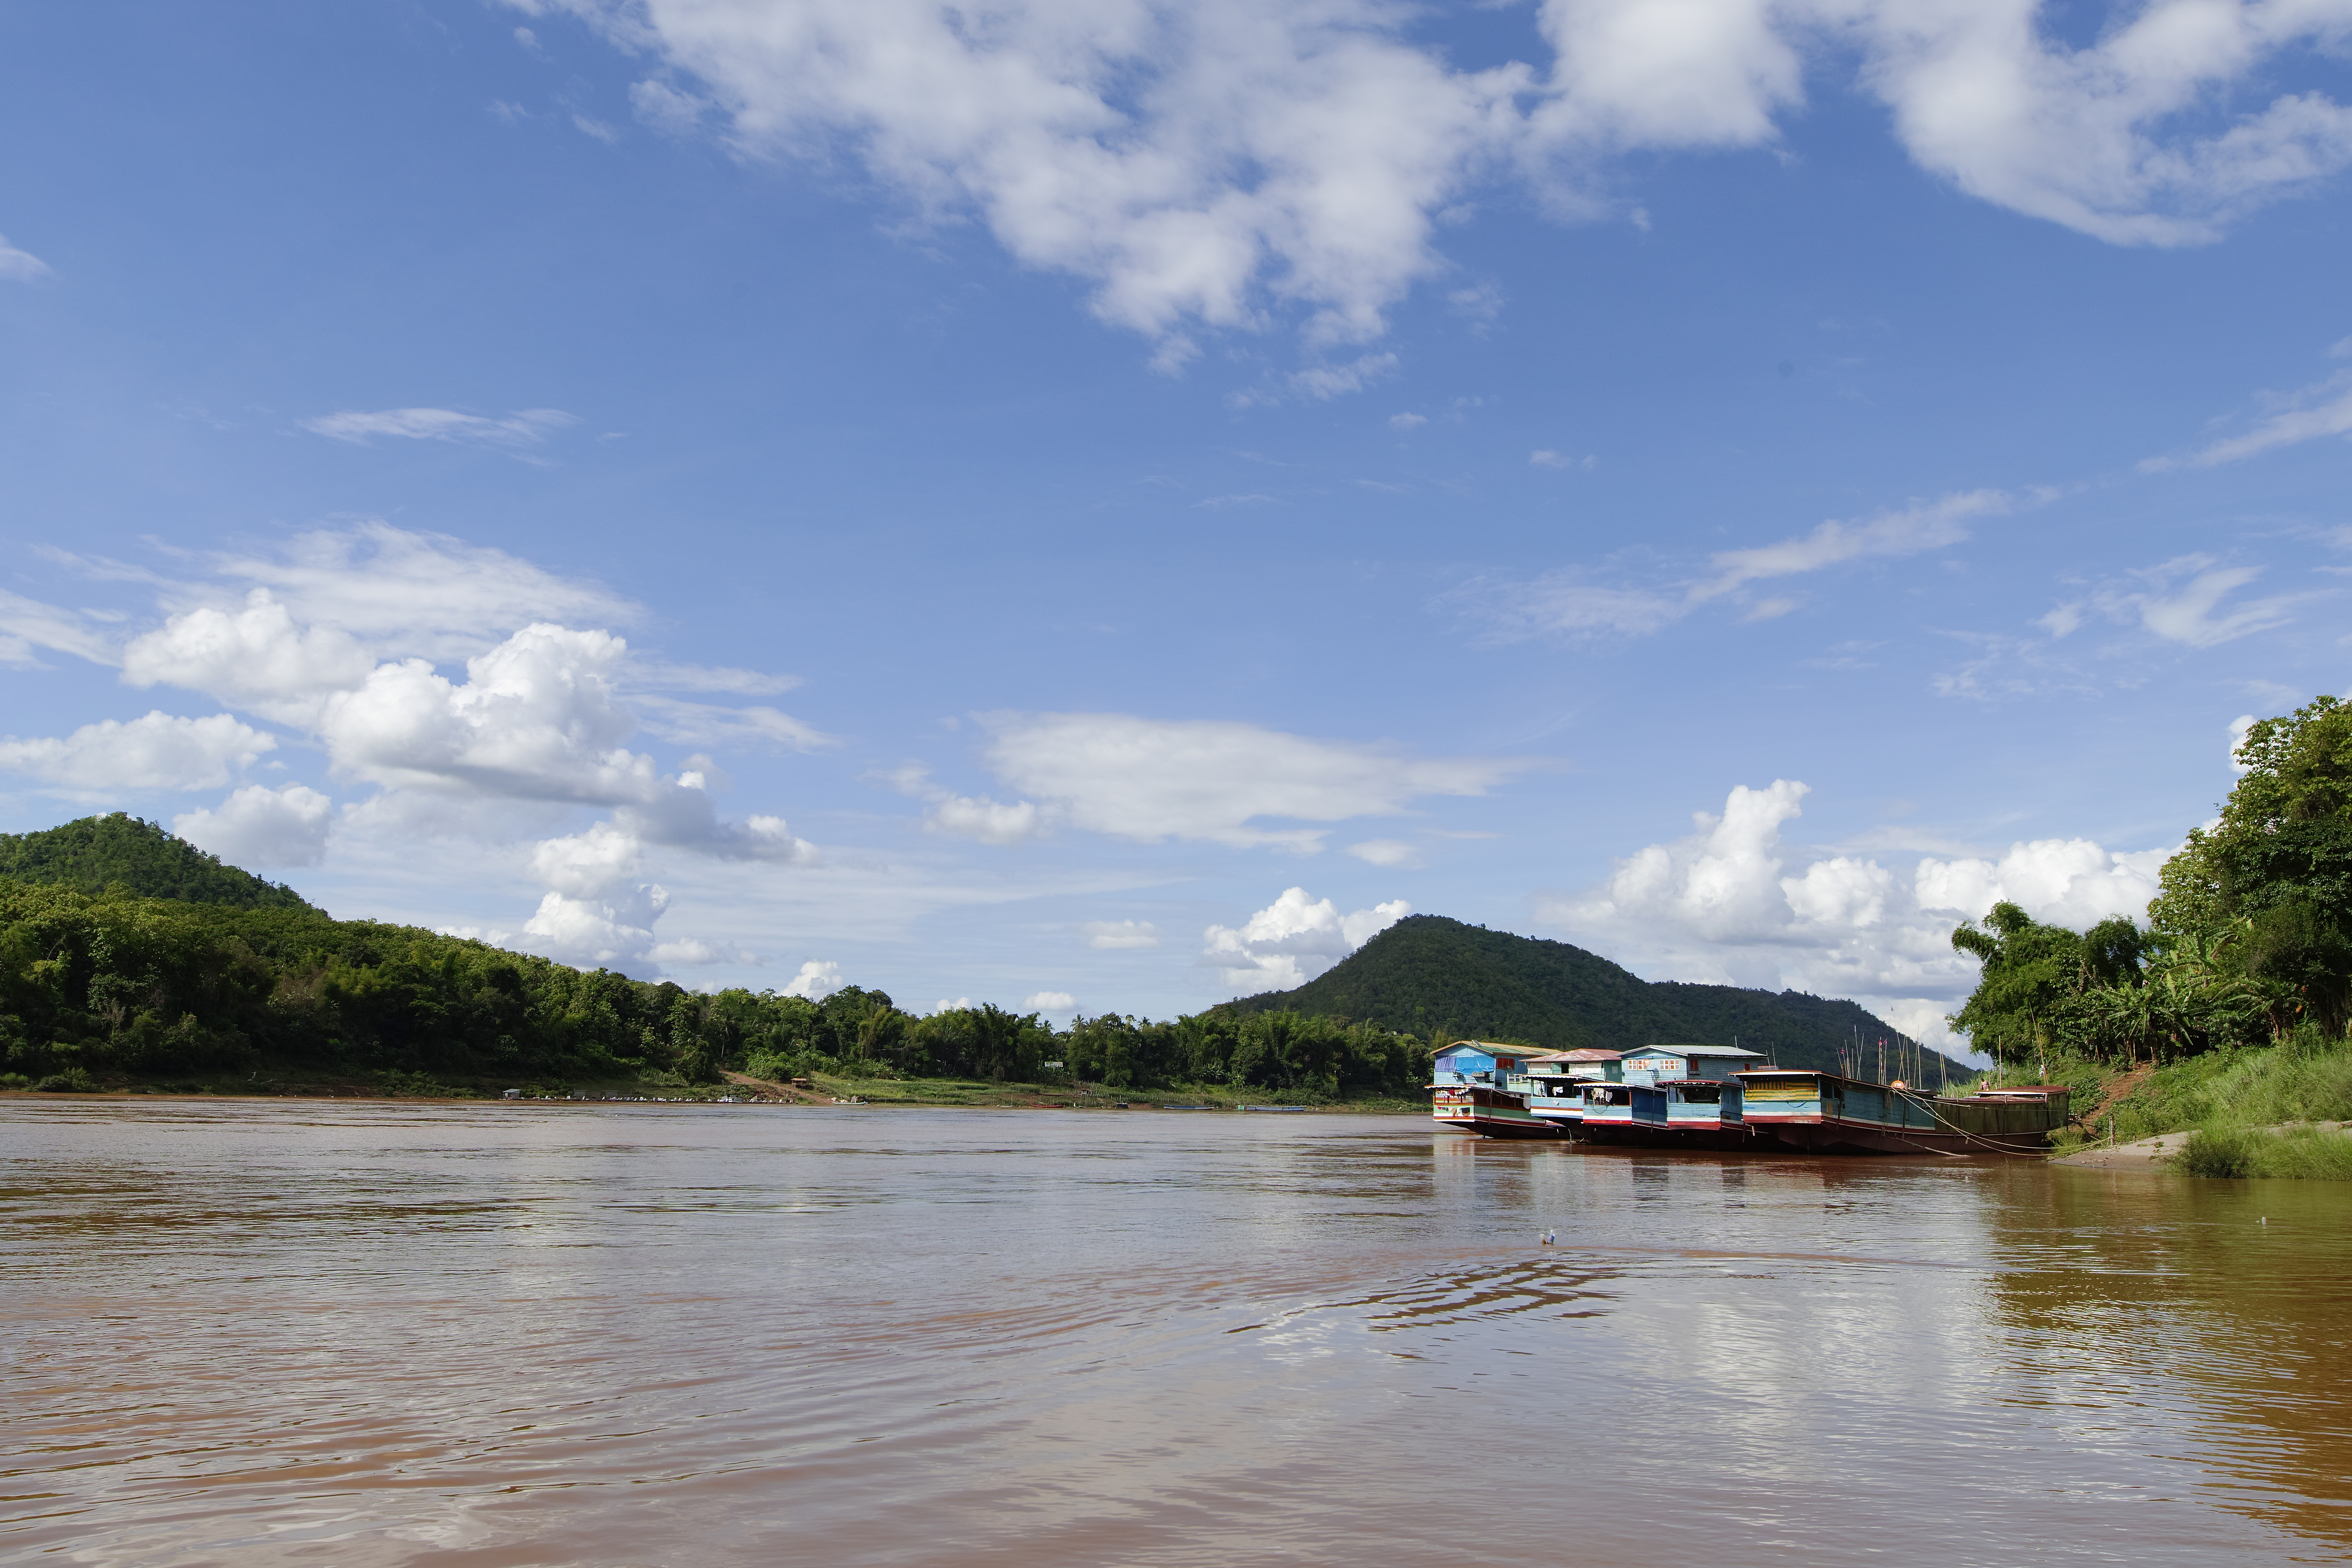 Take the cruise along the Mekong